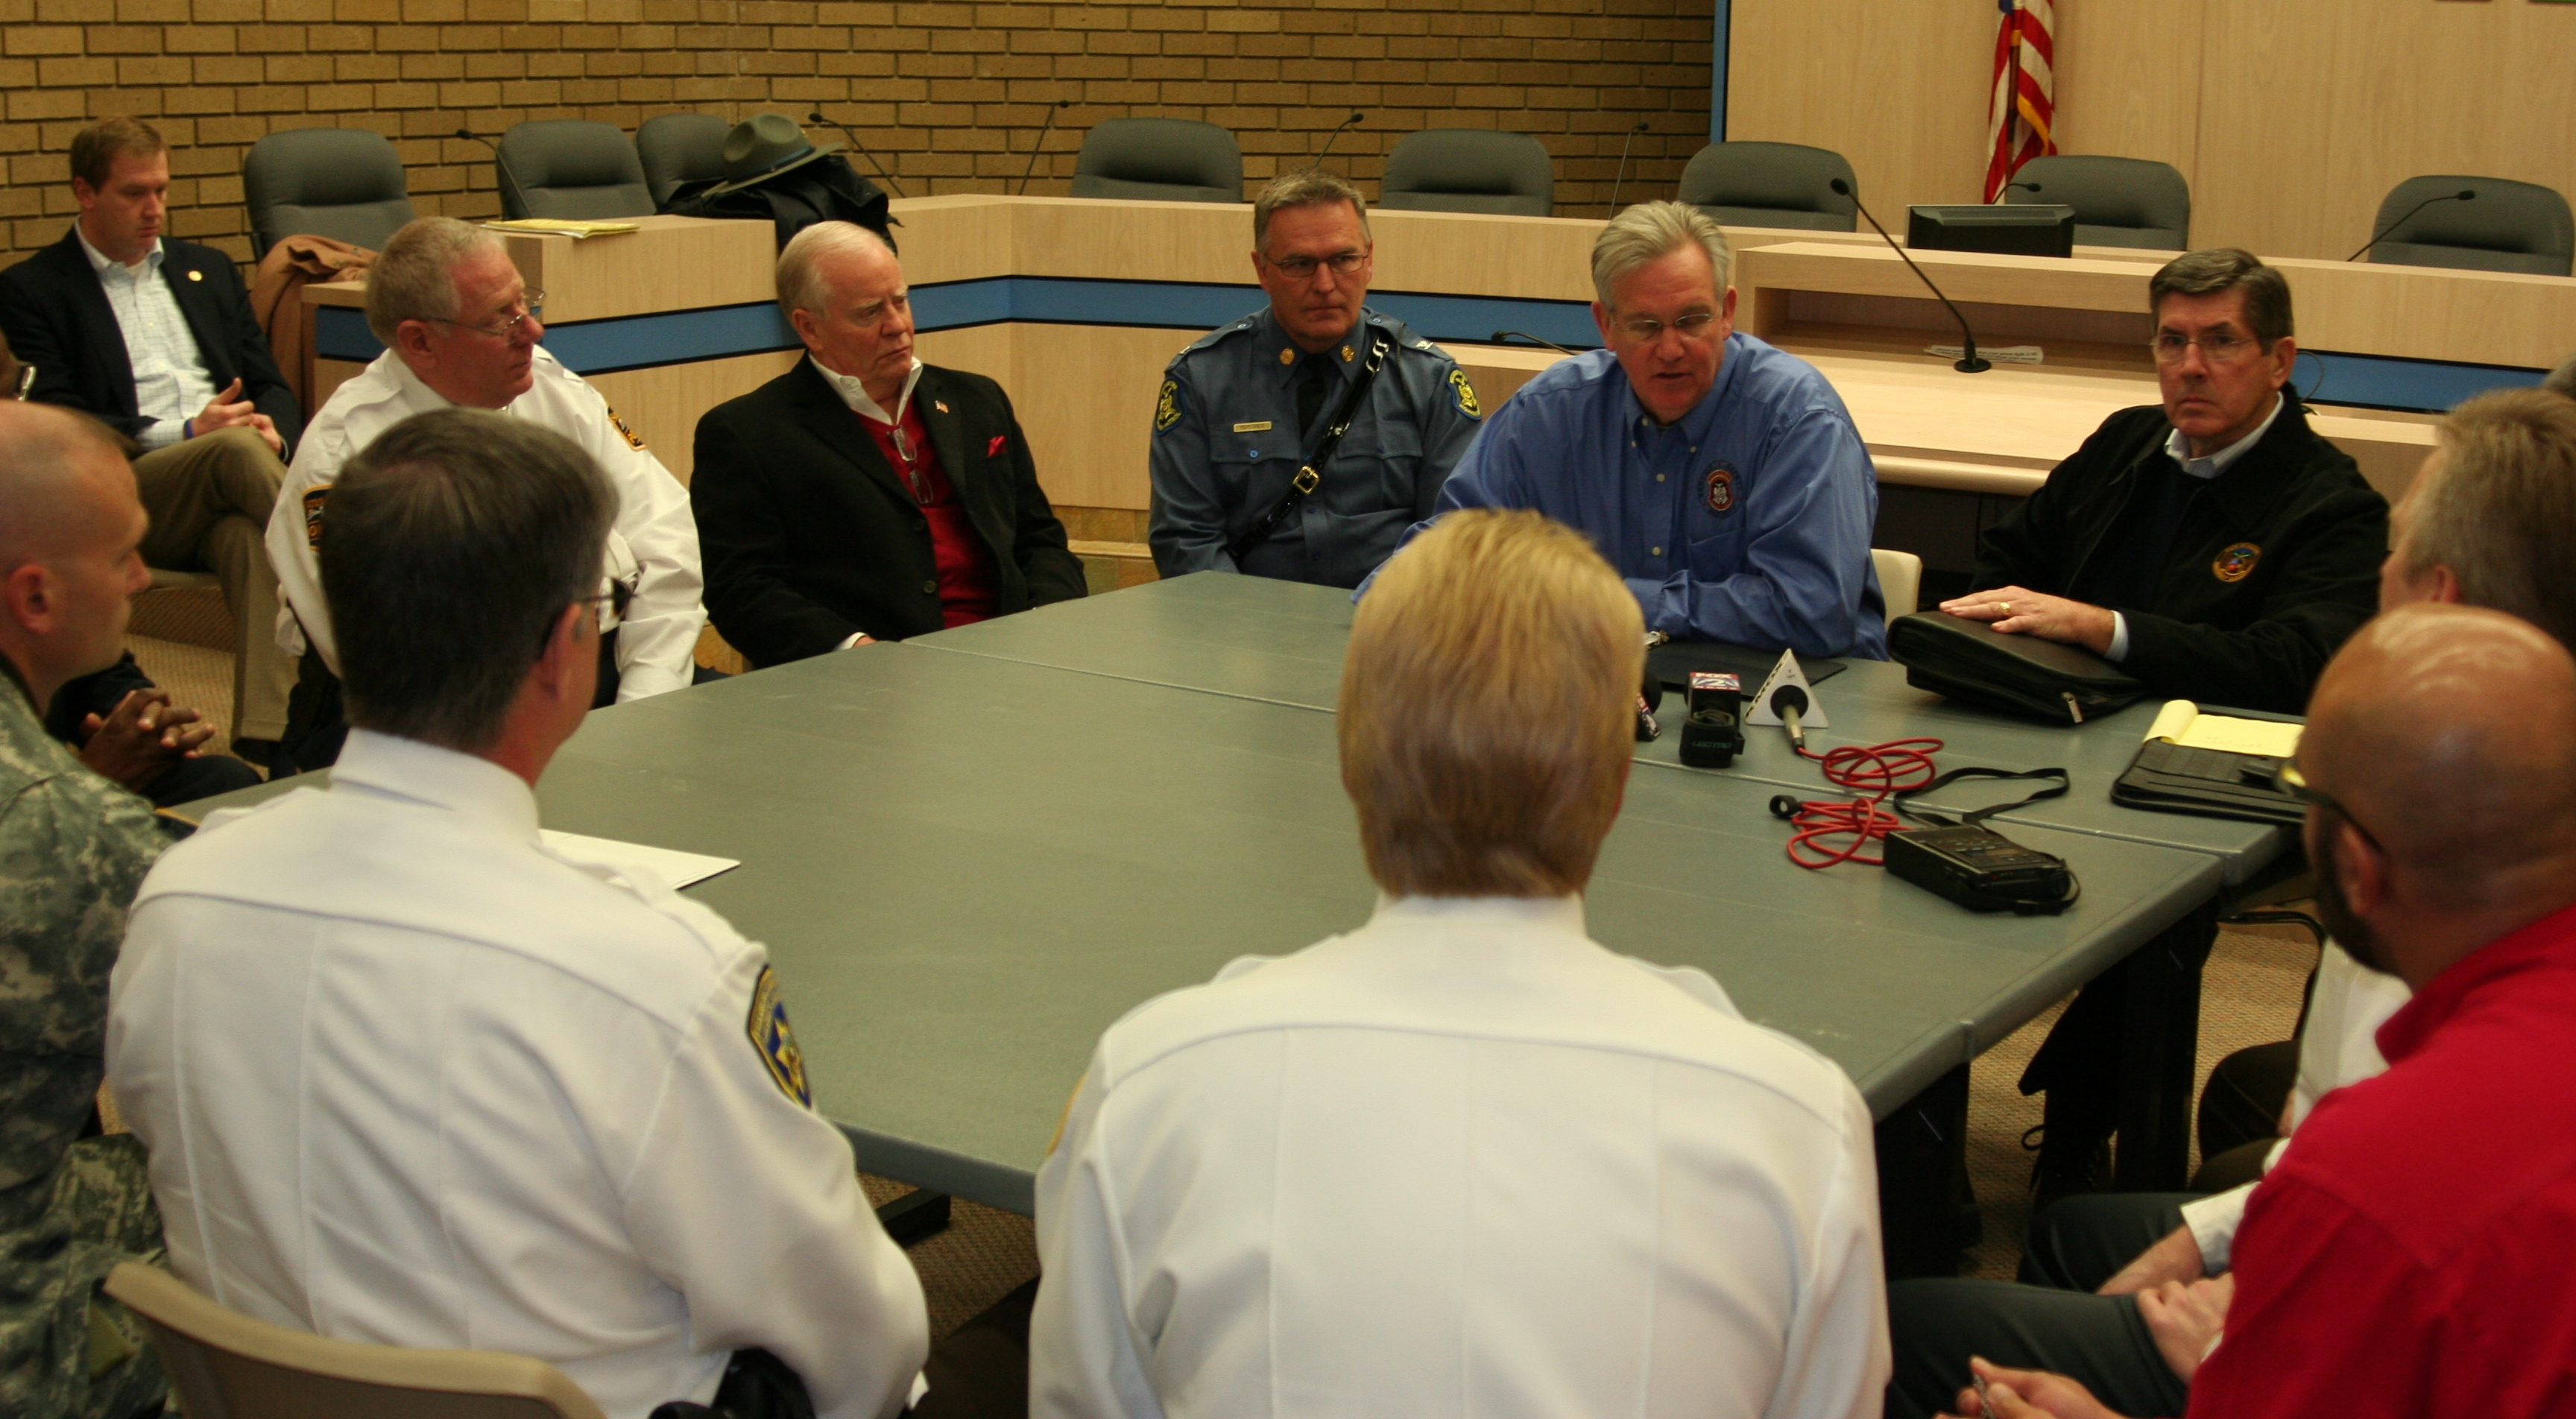 Missouri officials discuss the response after deadly tornadoes hit the state on December 31, 2010.